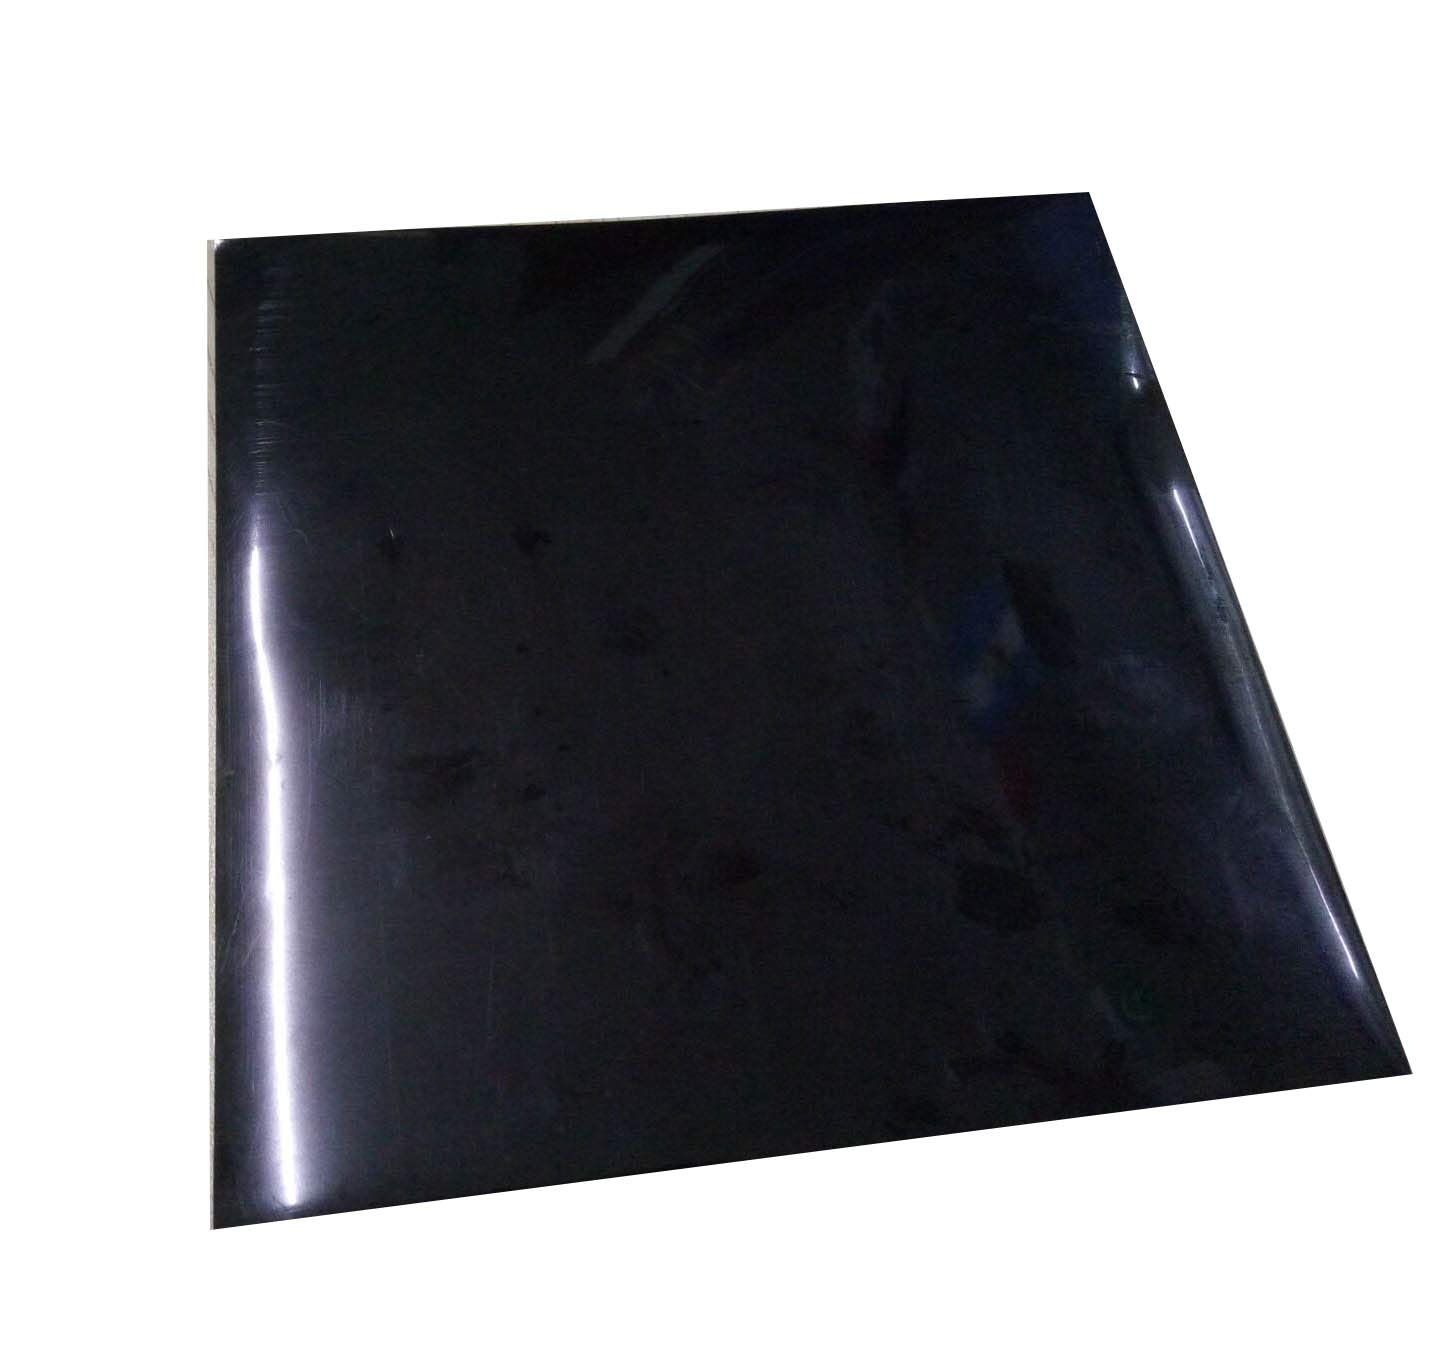 Black Heat Resistant Thin Silicone Rubber Gasket Sheet Adhesive Back 1 25 By 12 By 12 Inch Ad Thin Sponsored Silic Silicone Rubber Rubber Heat Resistant